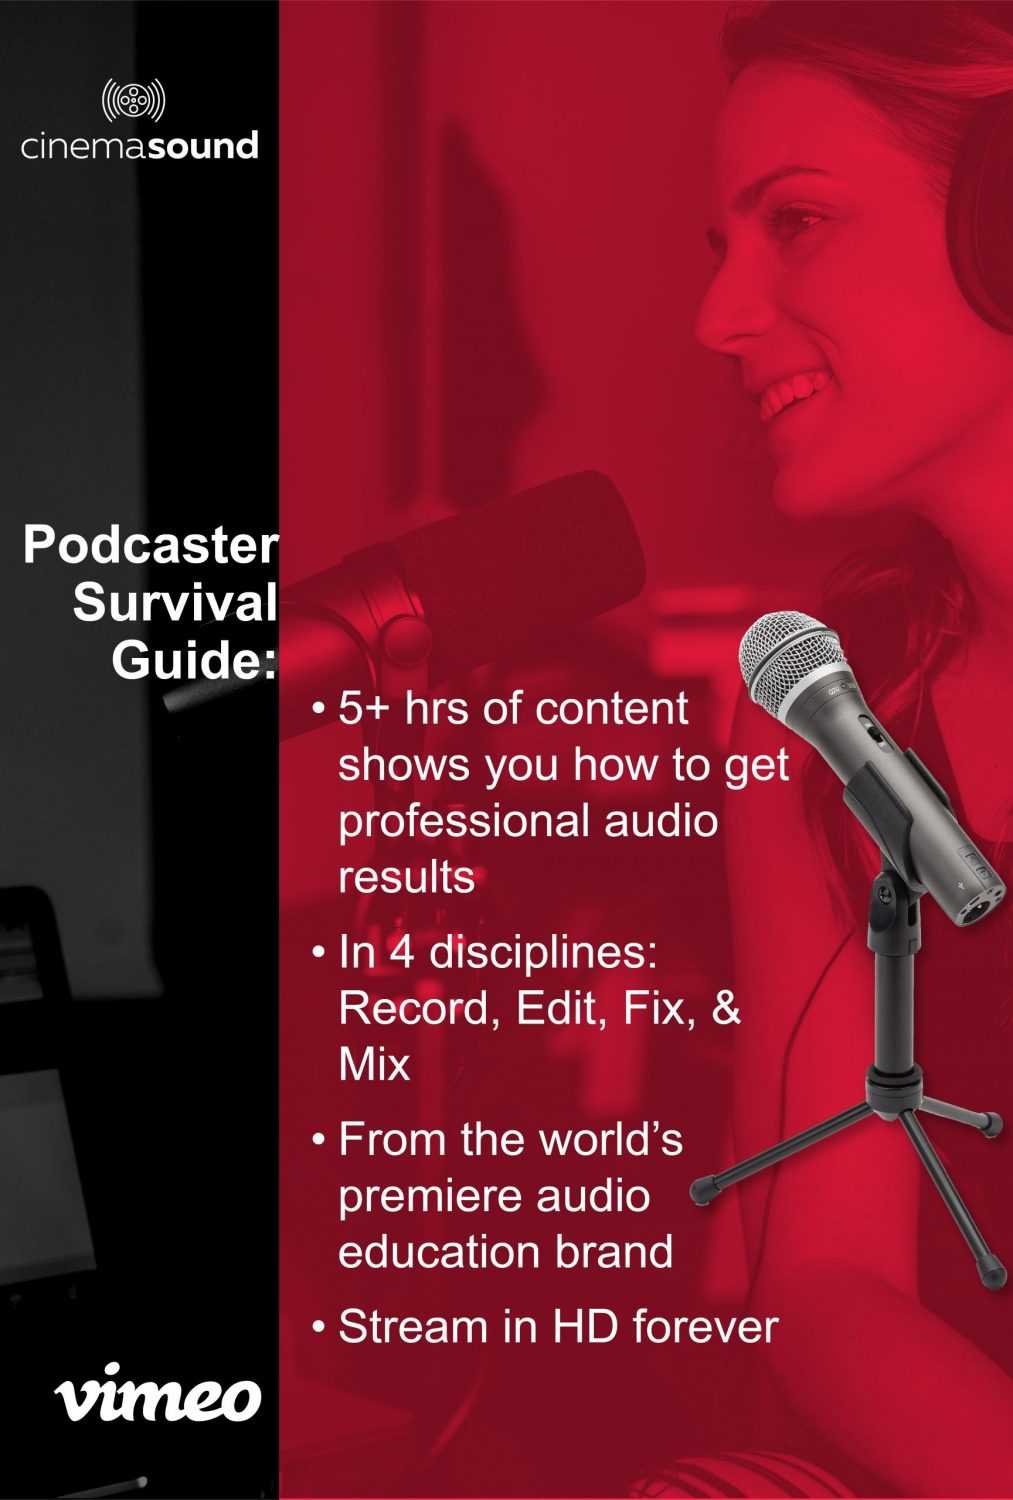 Podcaster Survival Guide Released!